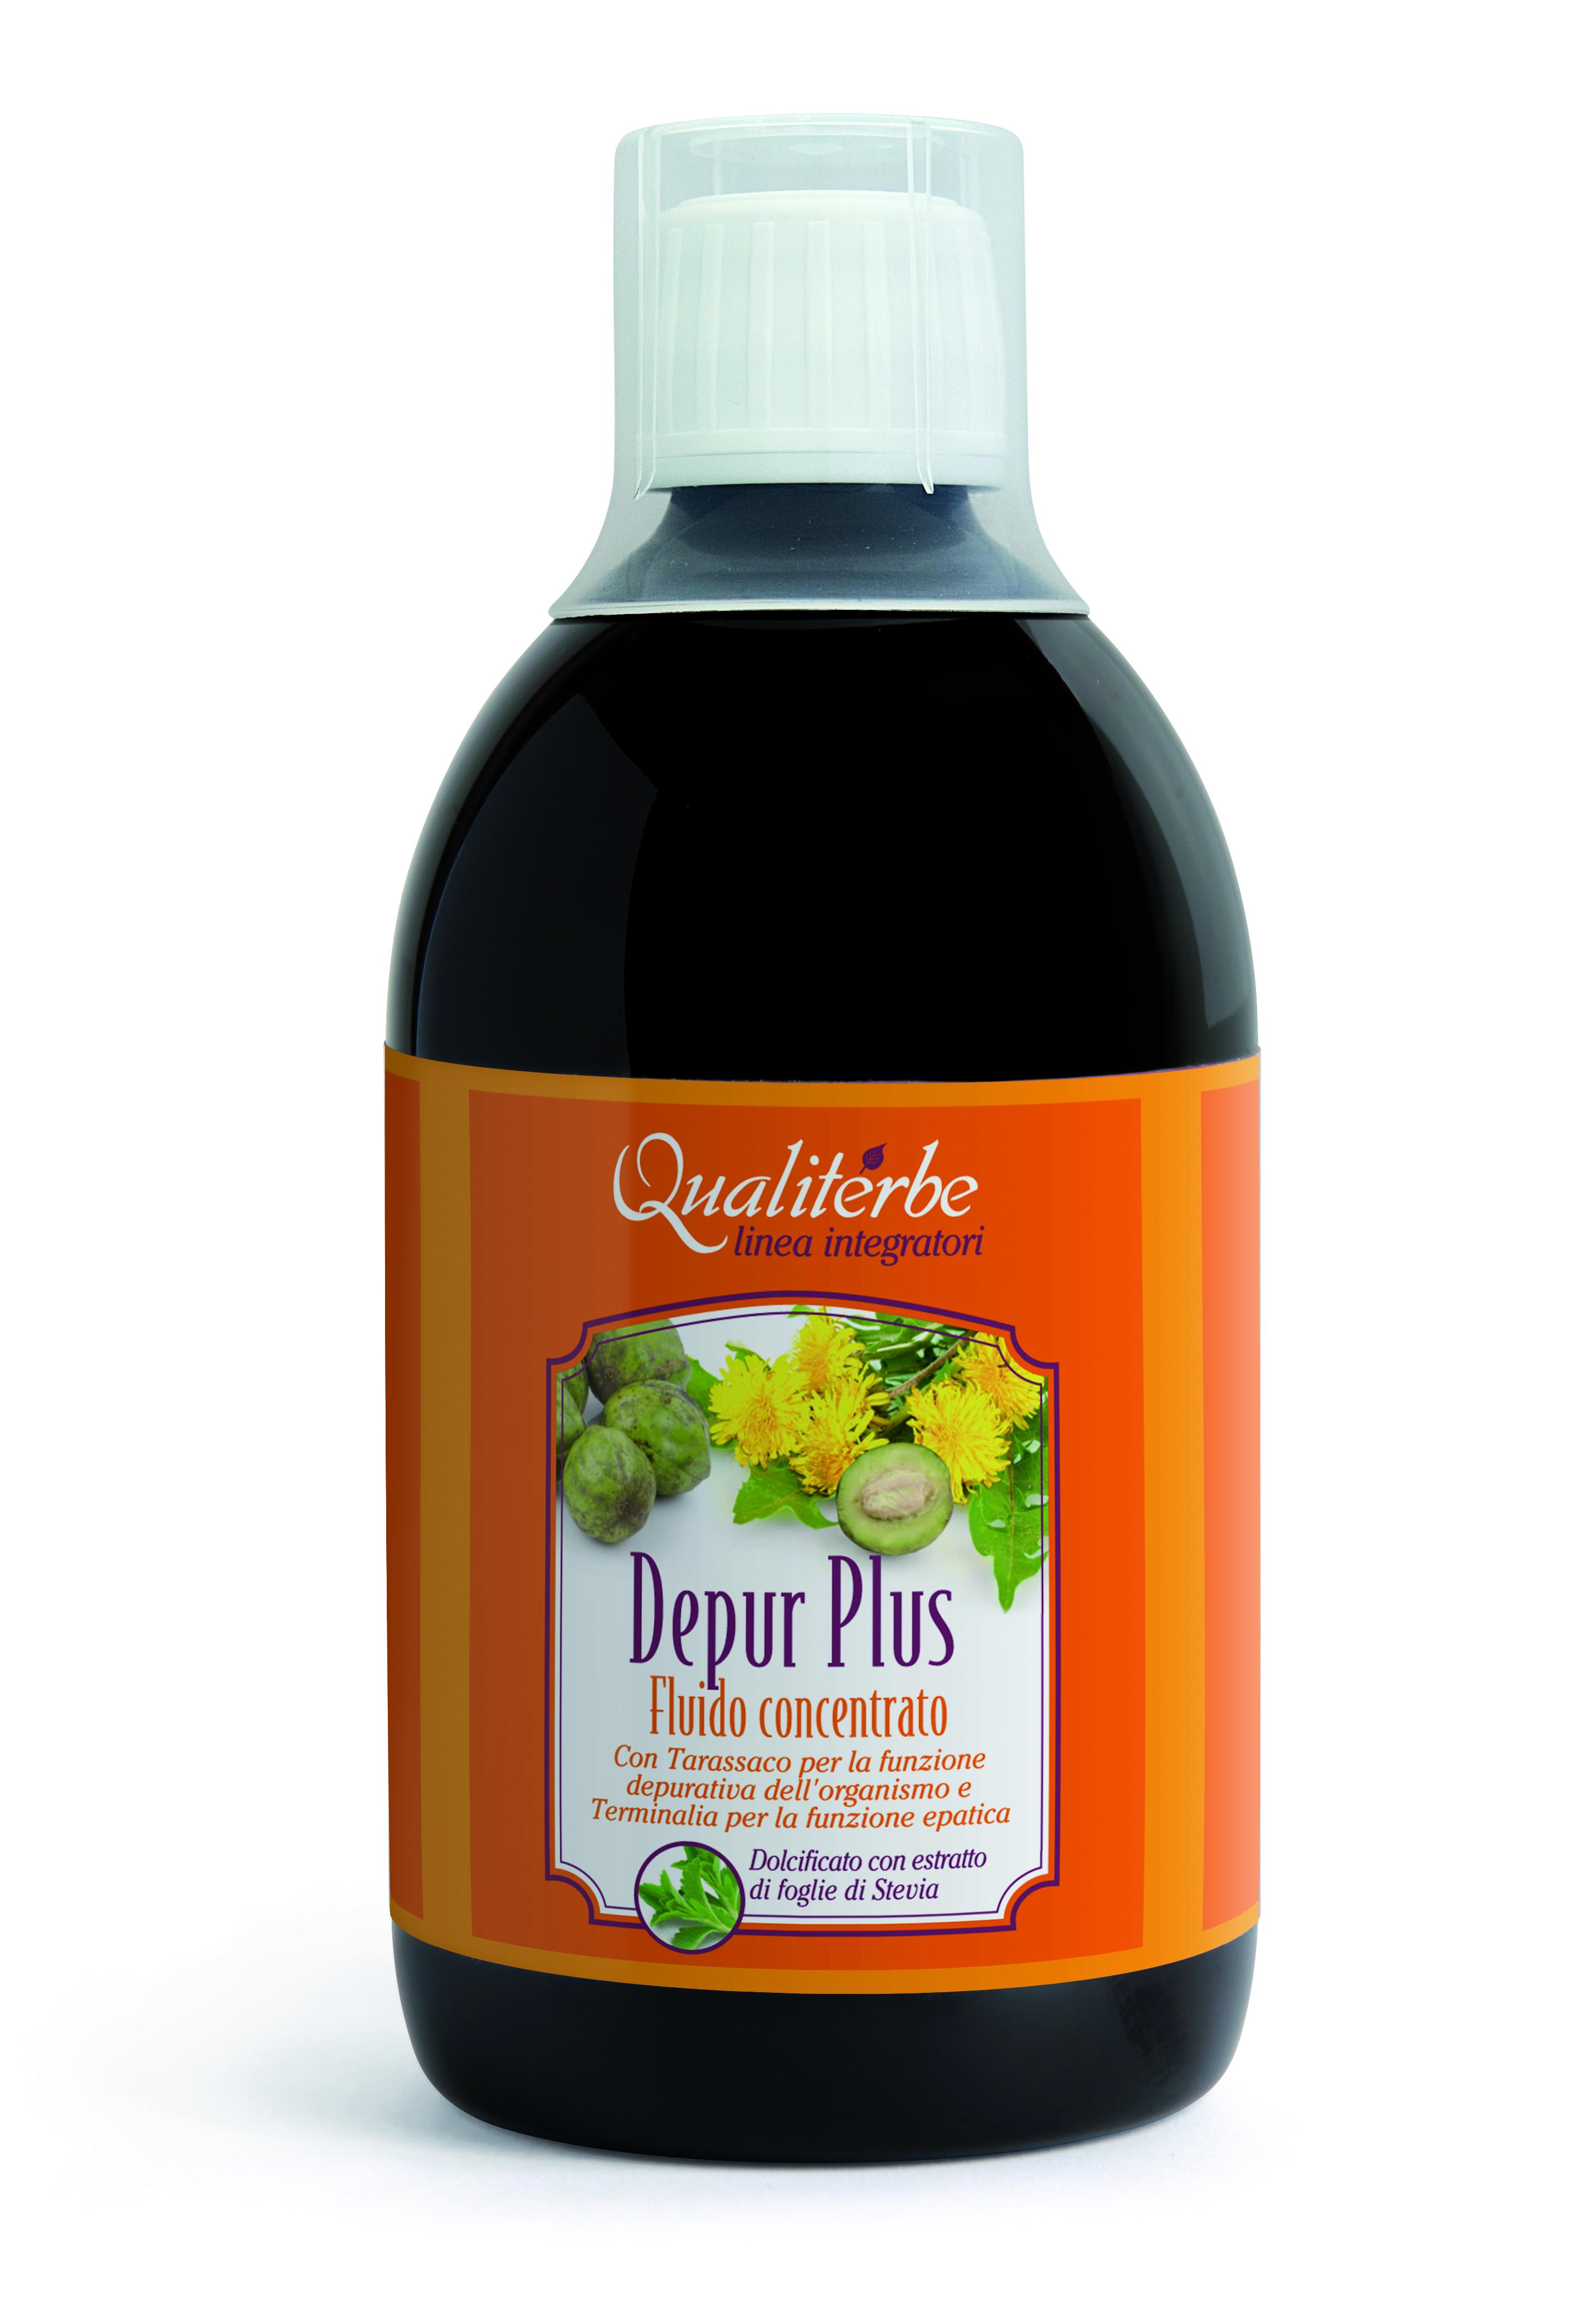 DEPUR PLUS (VeganOk) Depurativo analcolico in Fluido concentrato 500 ml